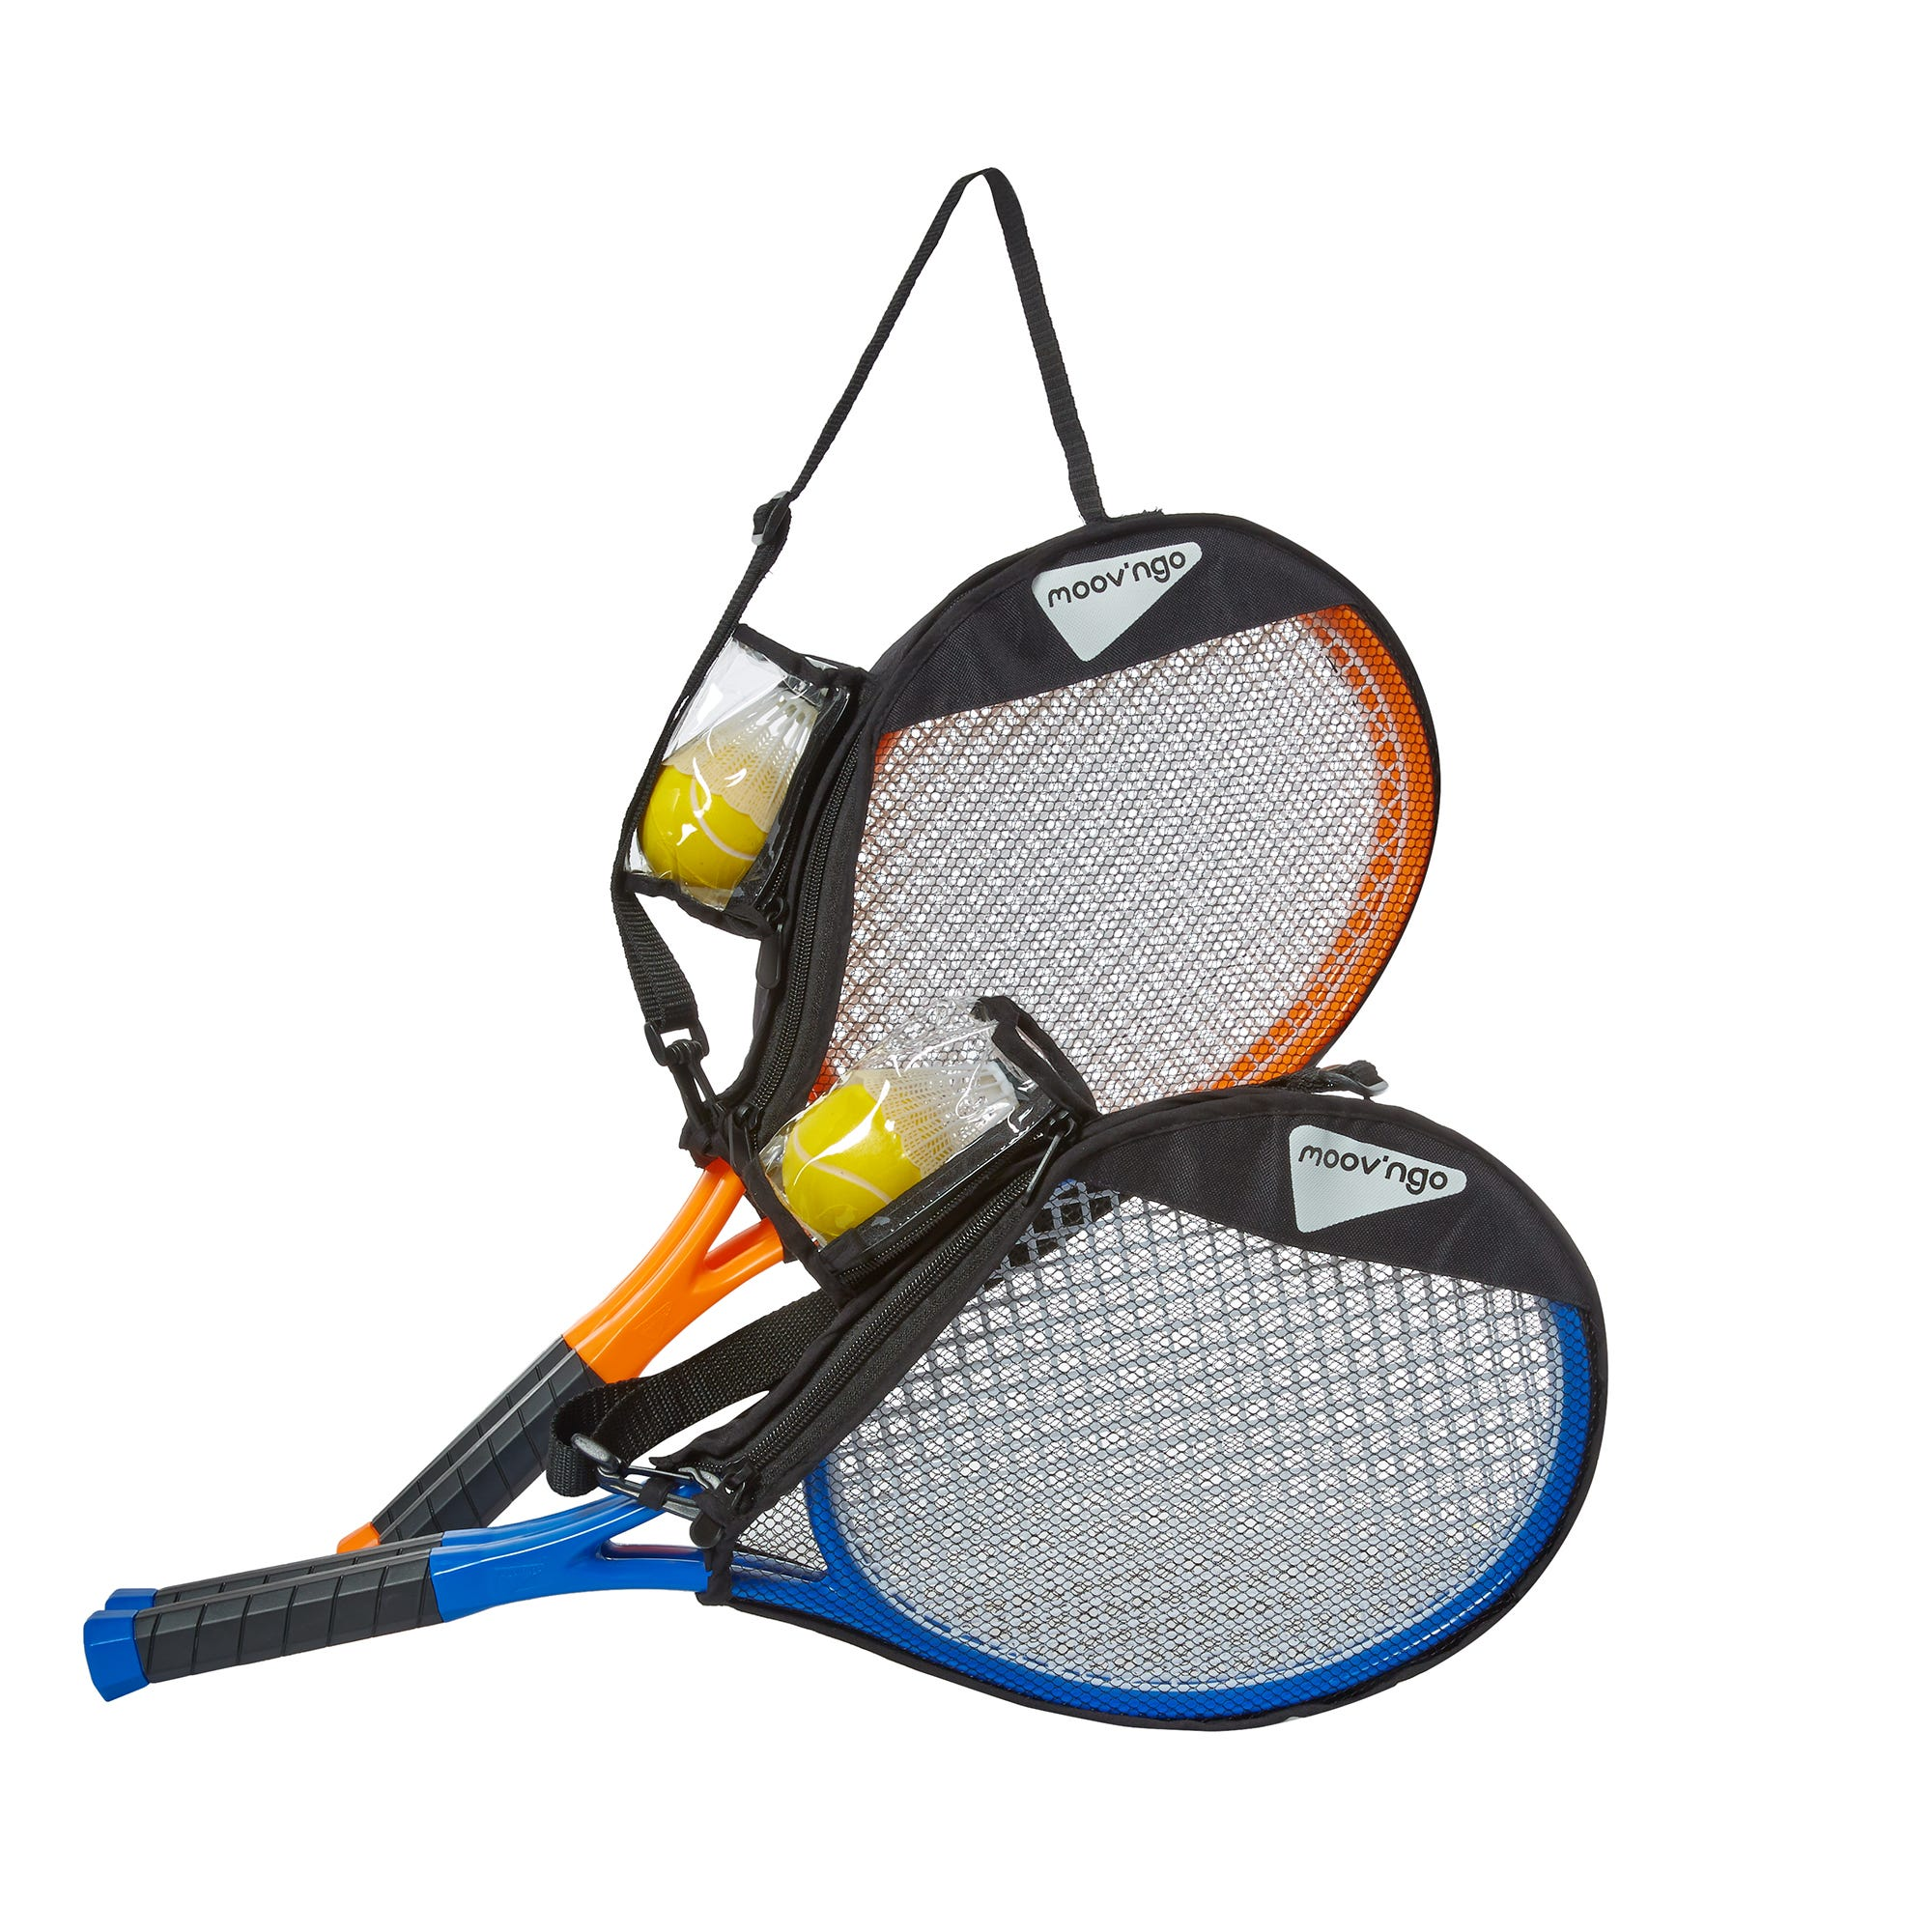 Moovngo Tennis/Badminton Set Assortment